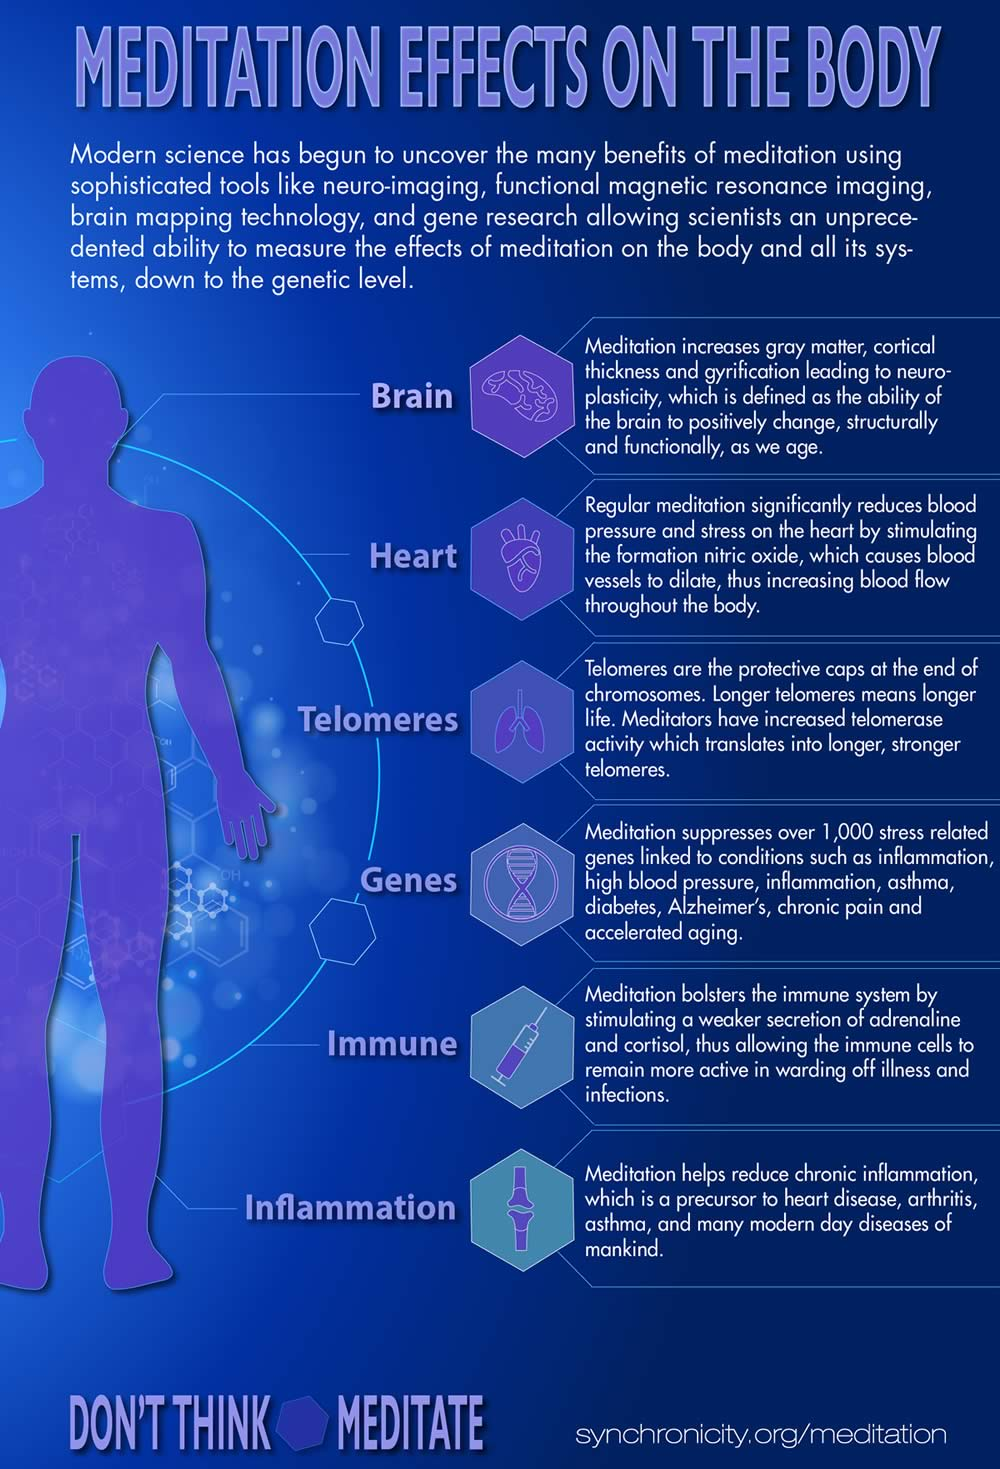 Meditation effects on the body